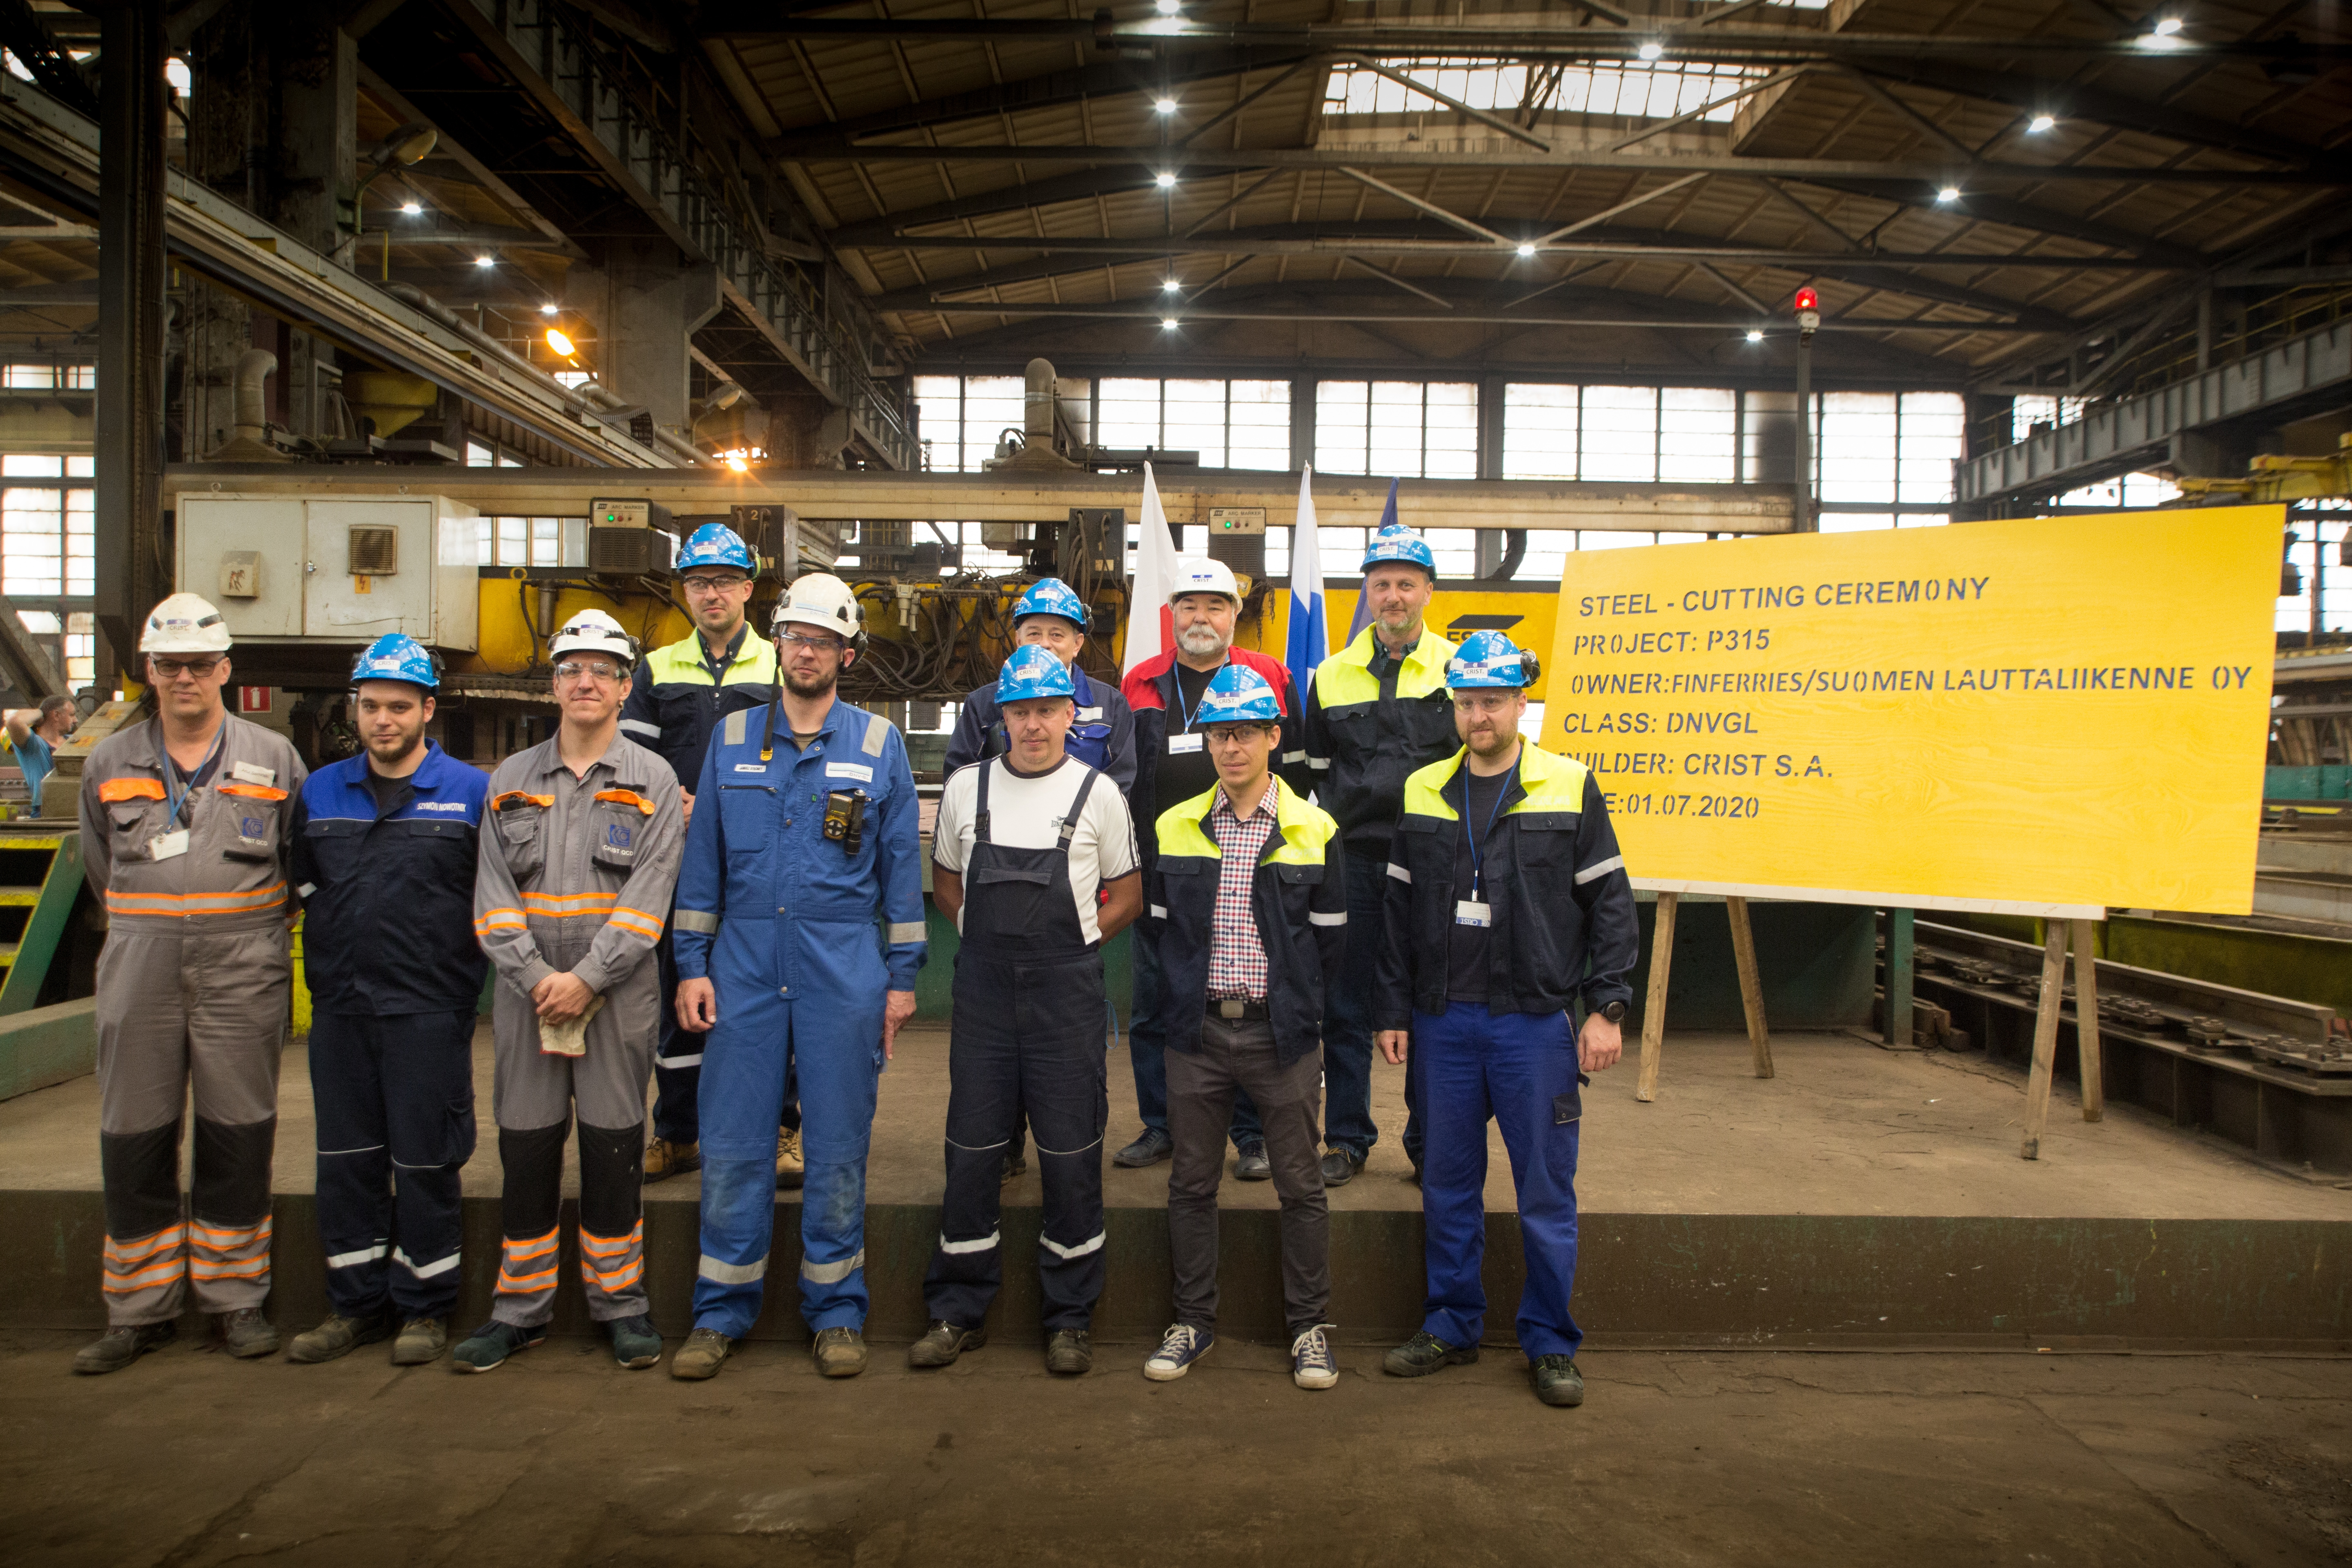 CRIST started steel cutting for another hybrid vessel